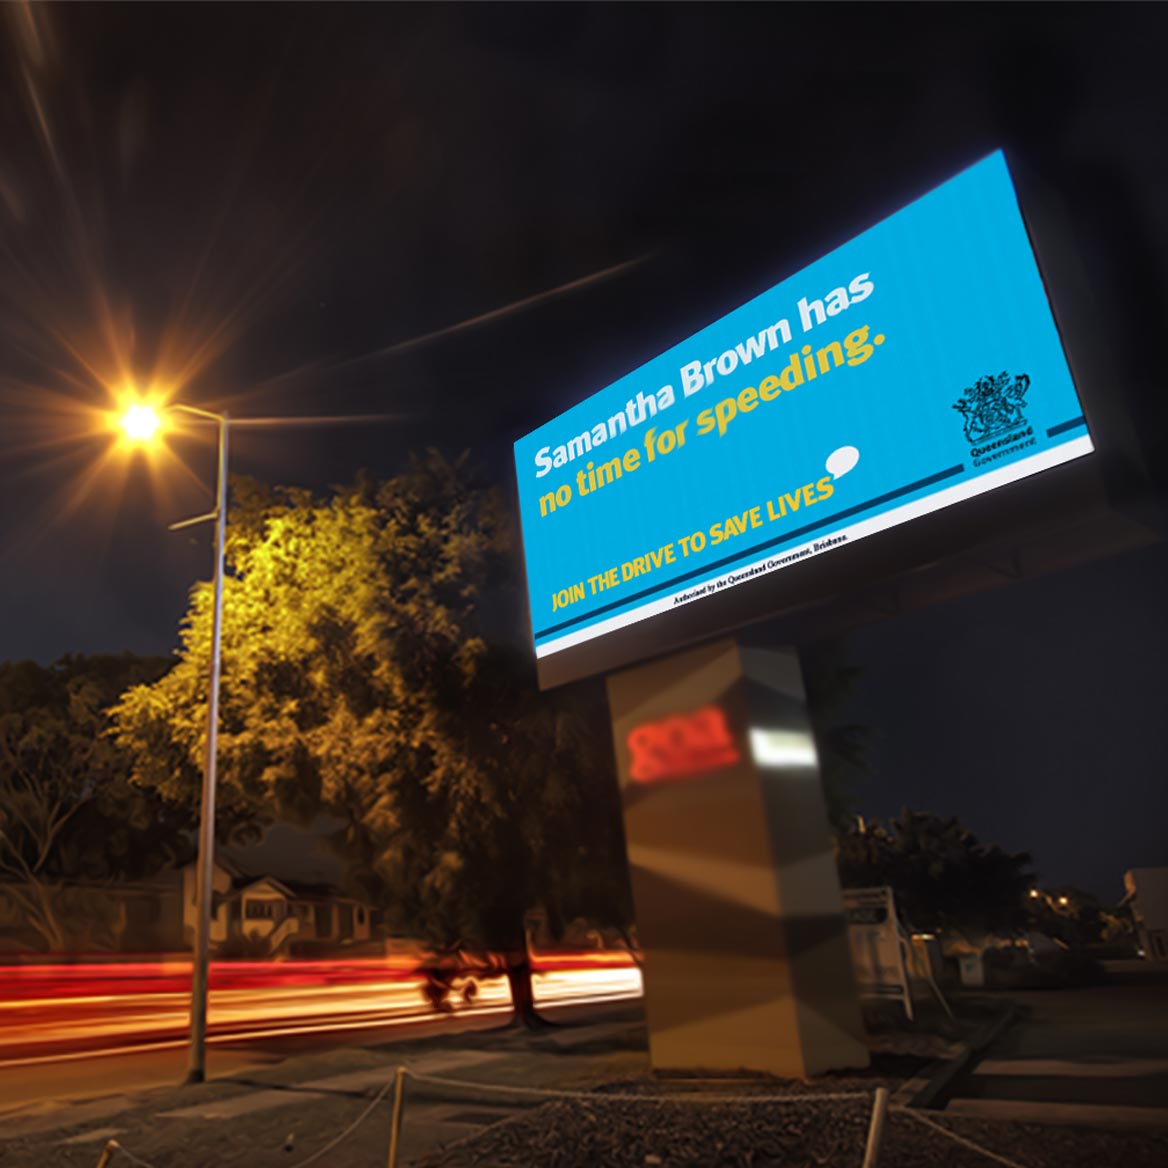 Billboard display user submitted support to Join the Drive